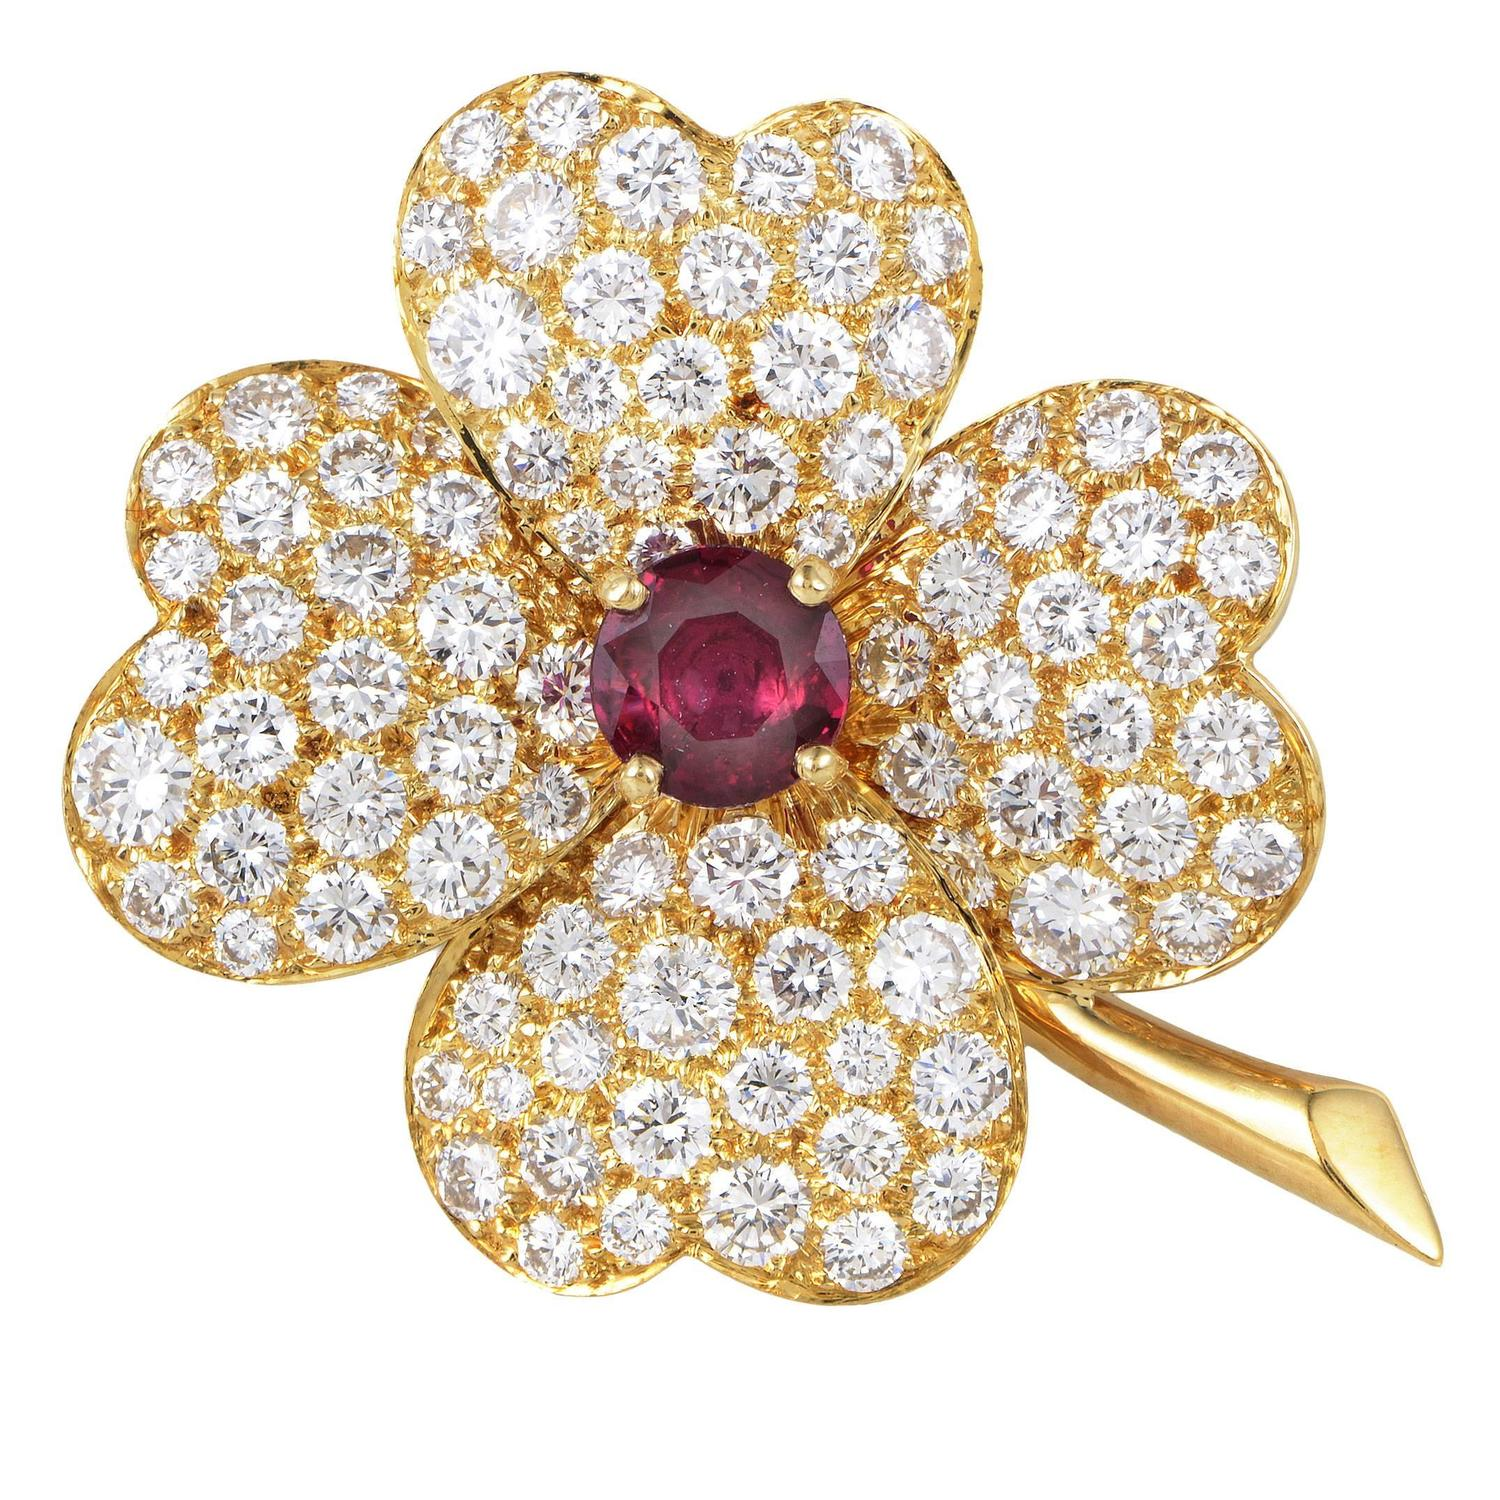 Van cleef amp arpels vca 18k yellow gold ruby cabochon amp diamond - Van Cleef Amp Arpels Cosmos Ruby Diamond Gold Pendant Brooch